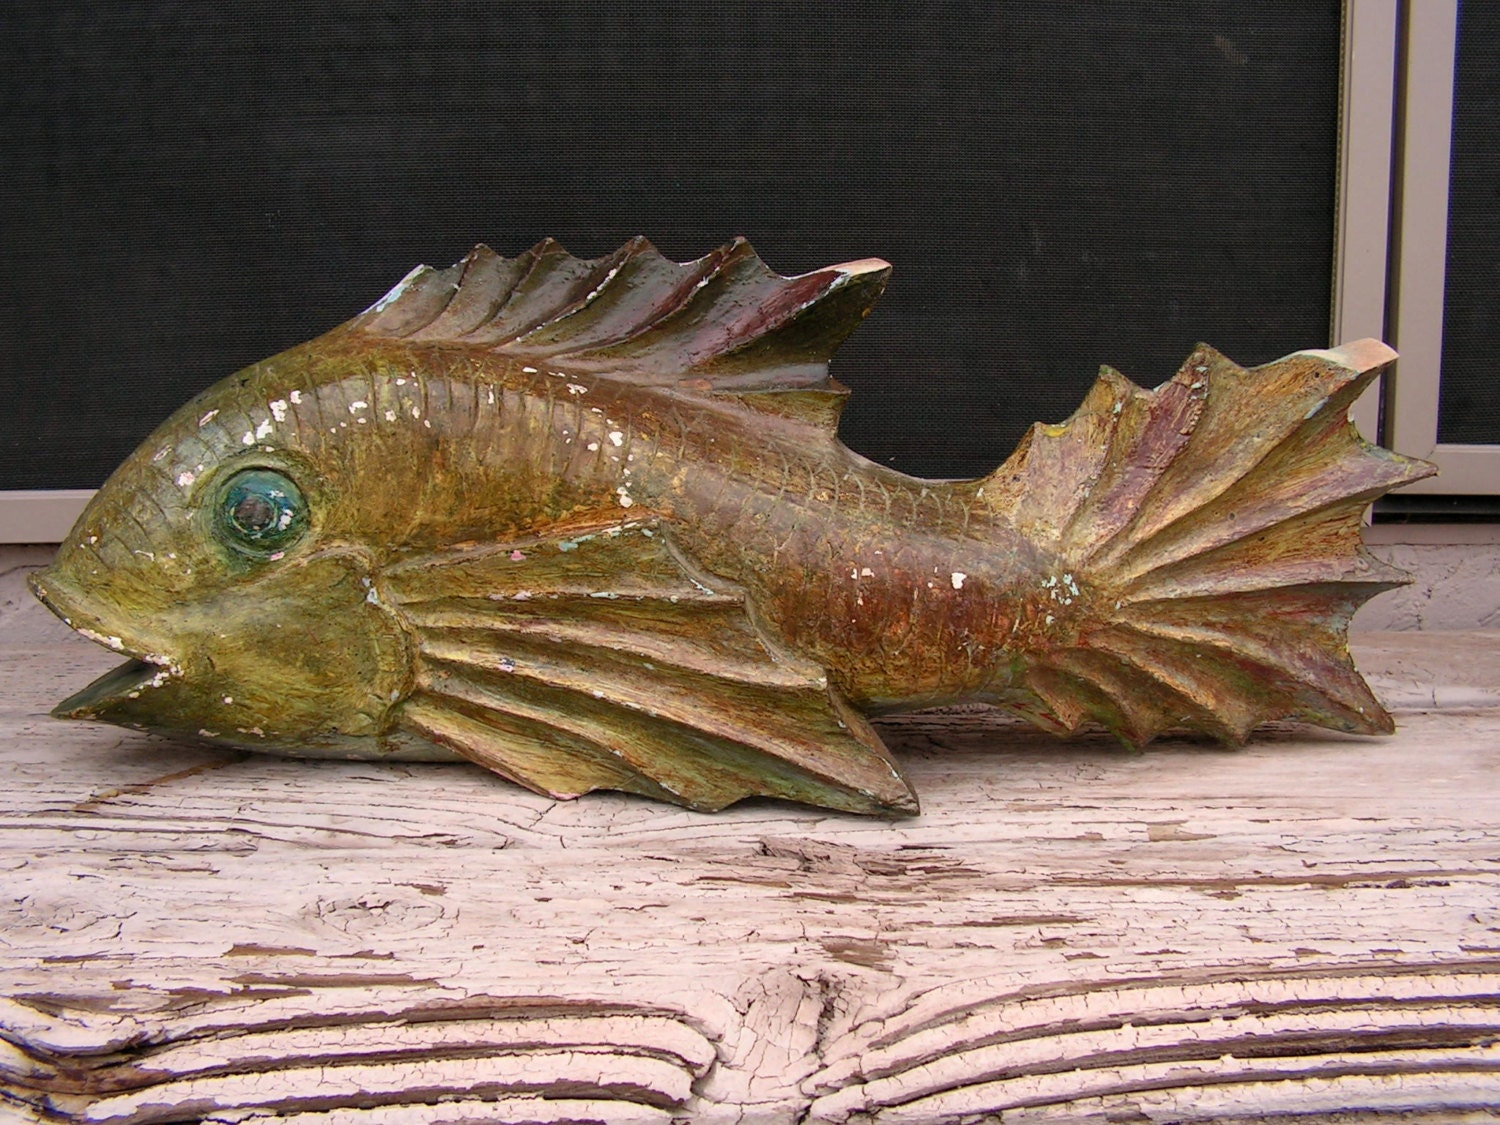 Japanese carp wood carving carved wooden fish statue sculpture